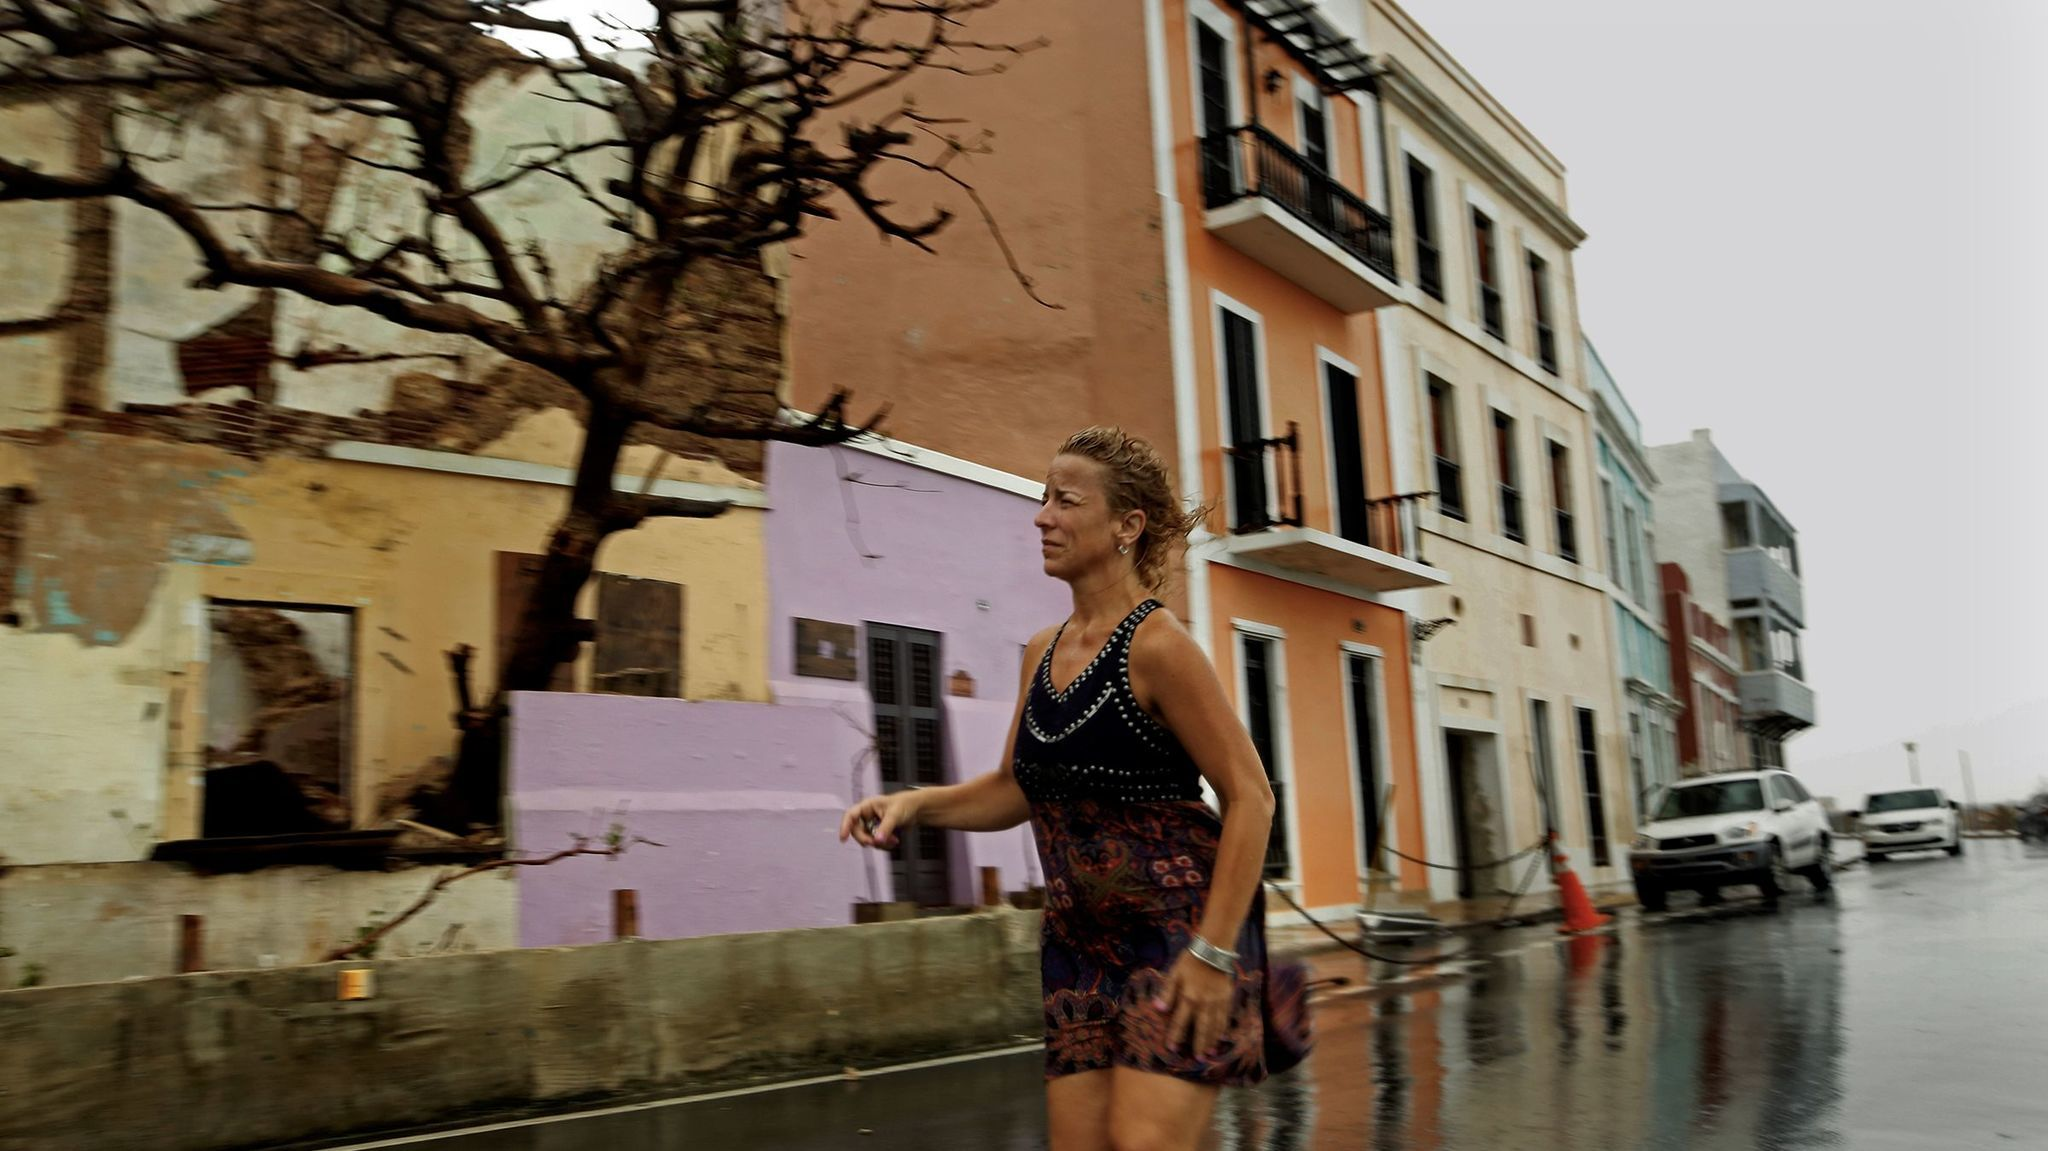 Rosa Avalo awoke in her home in Old San Juan to several inches of floodwater and a gaping hole in the bathroom wall.